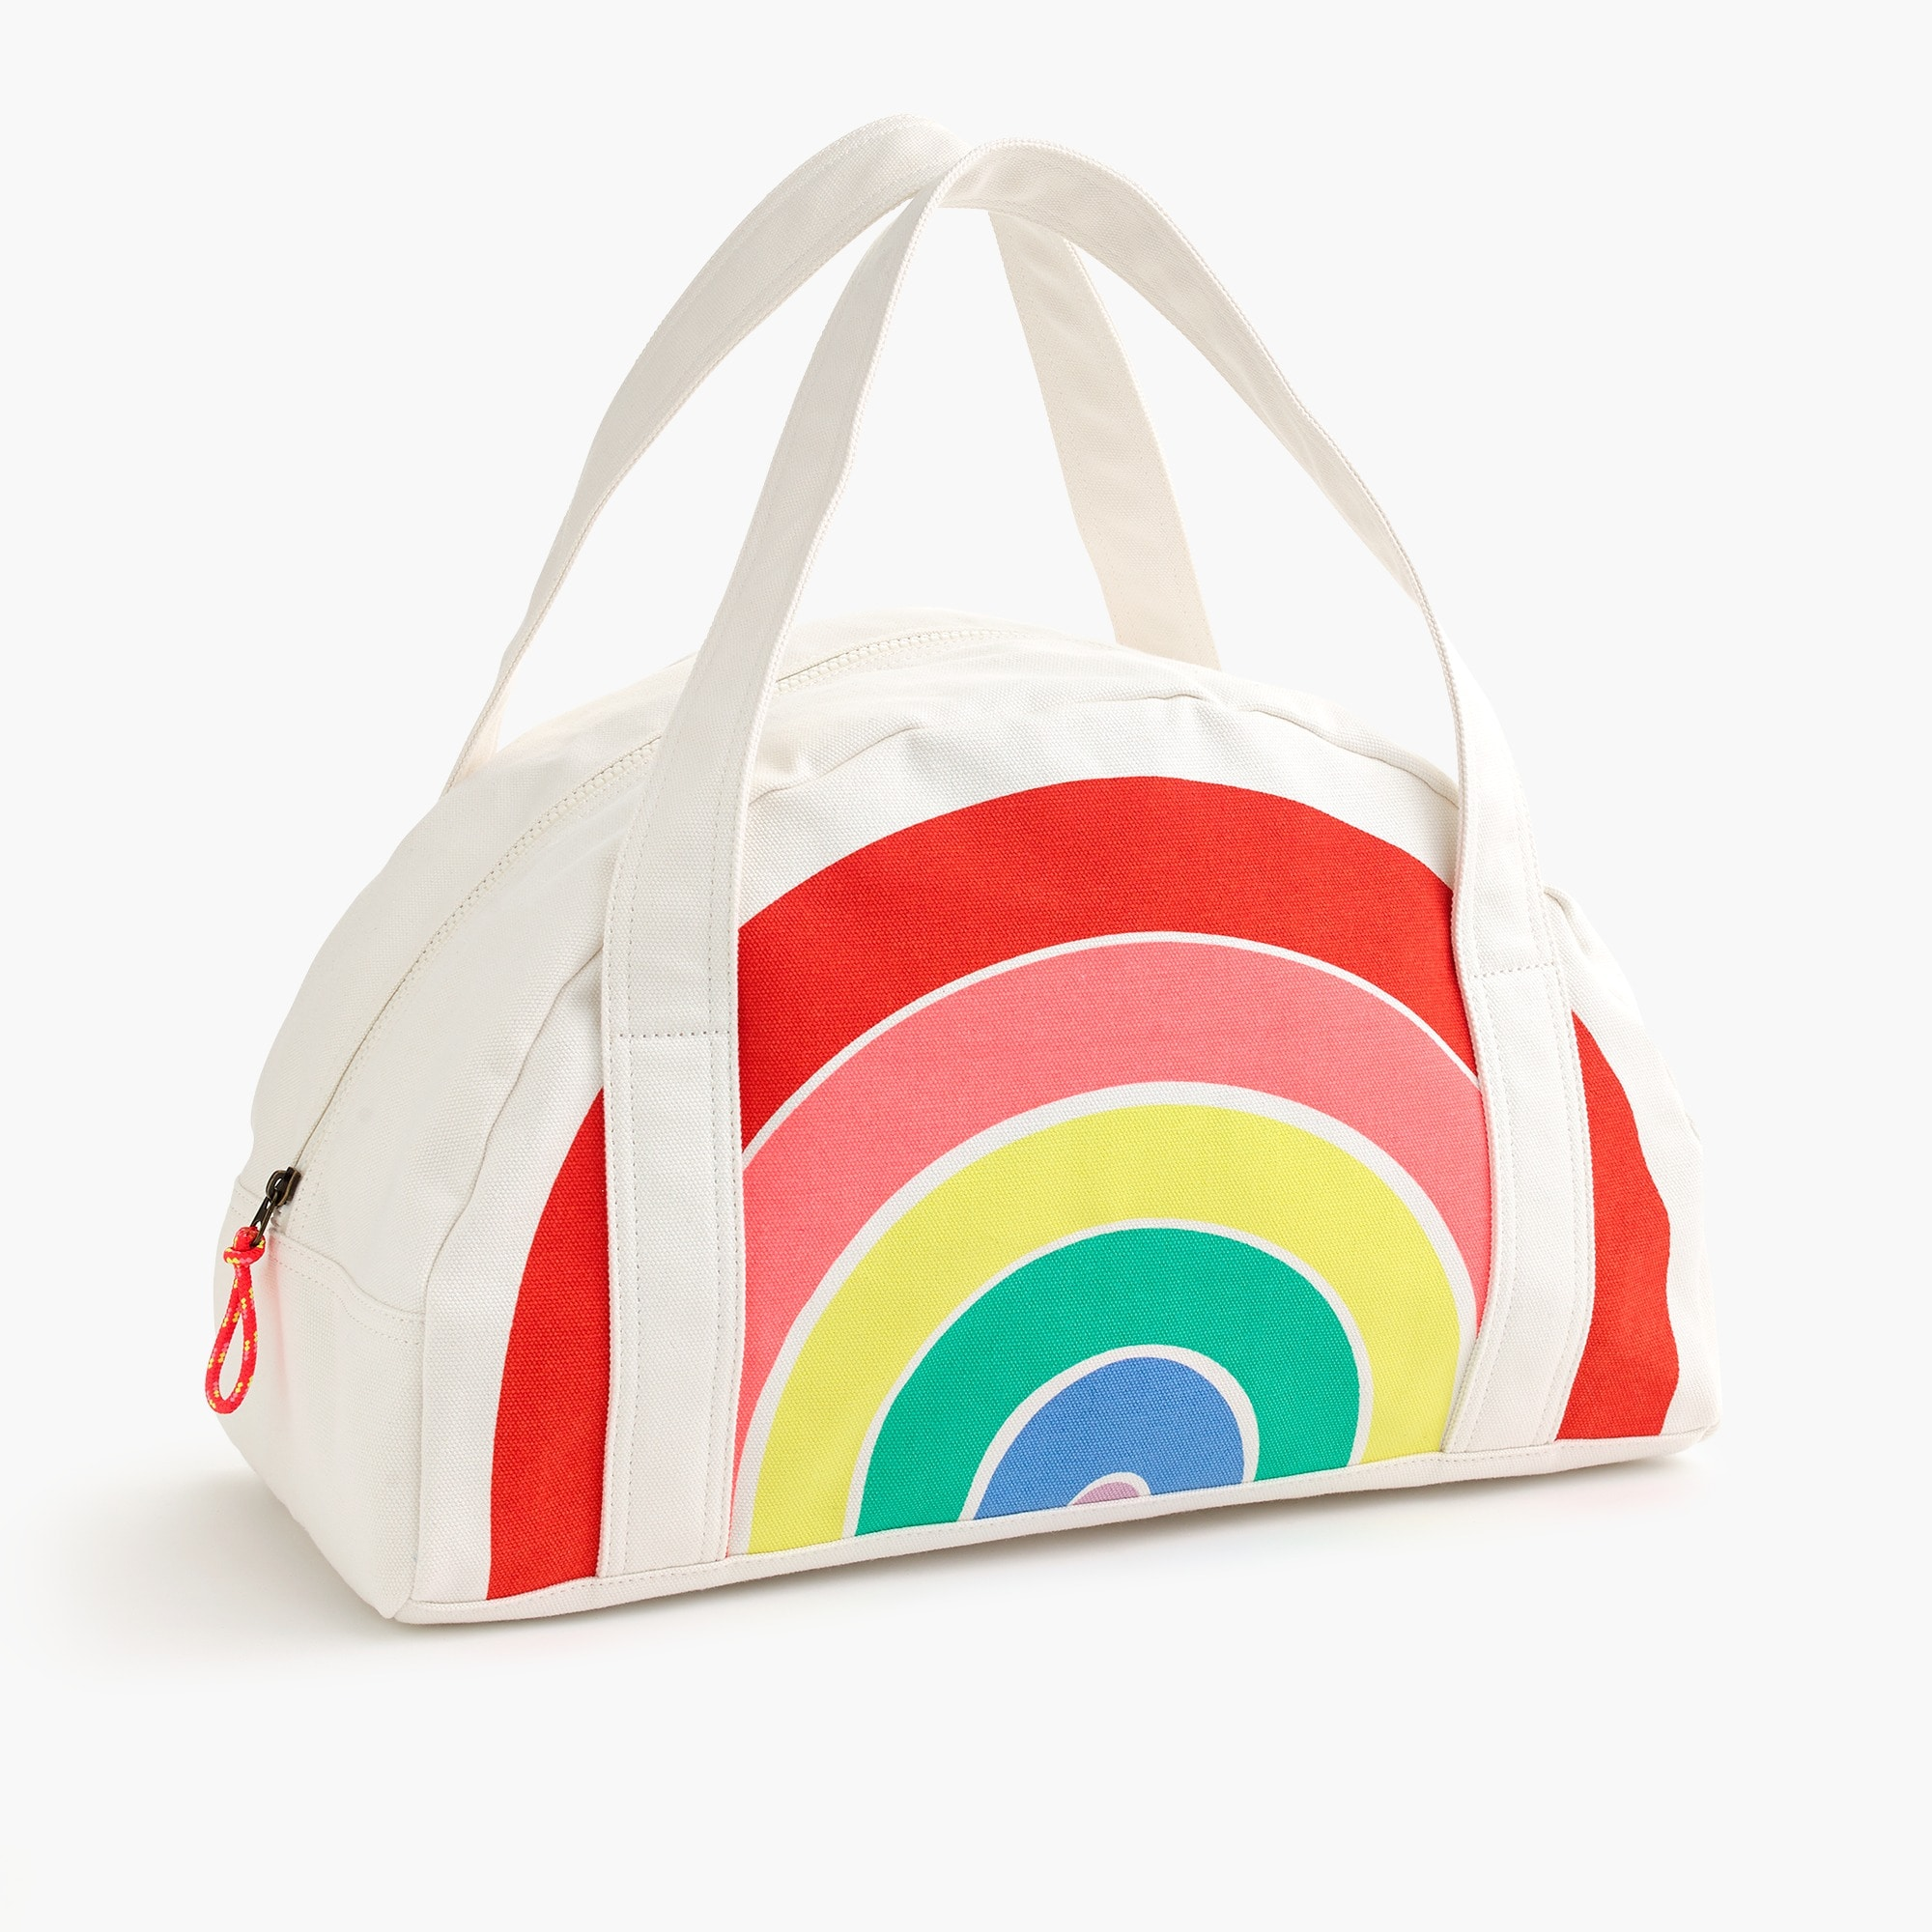 Image 1 for Girls' rainbow overnight bag